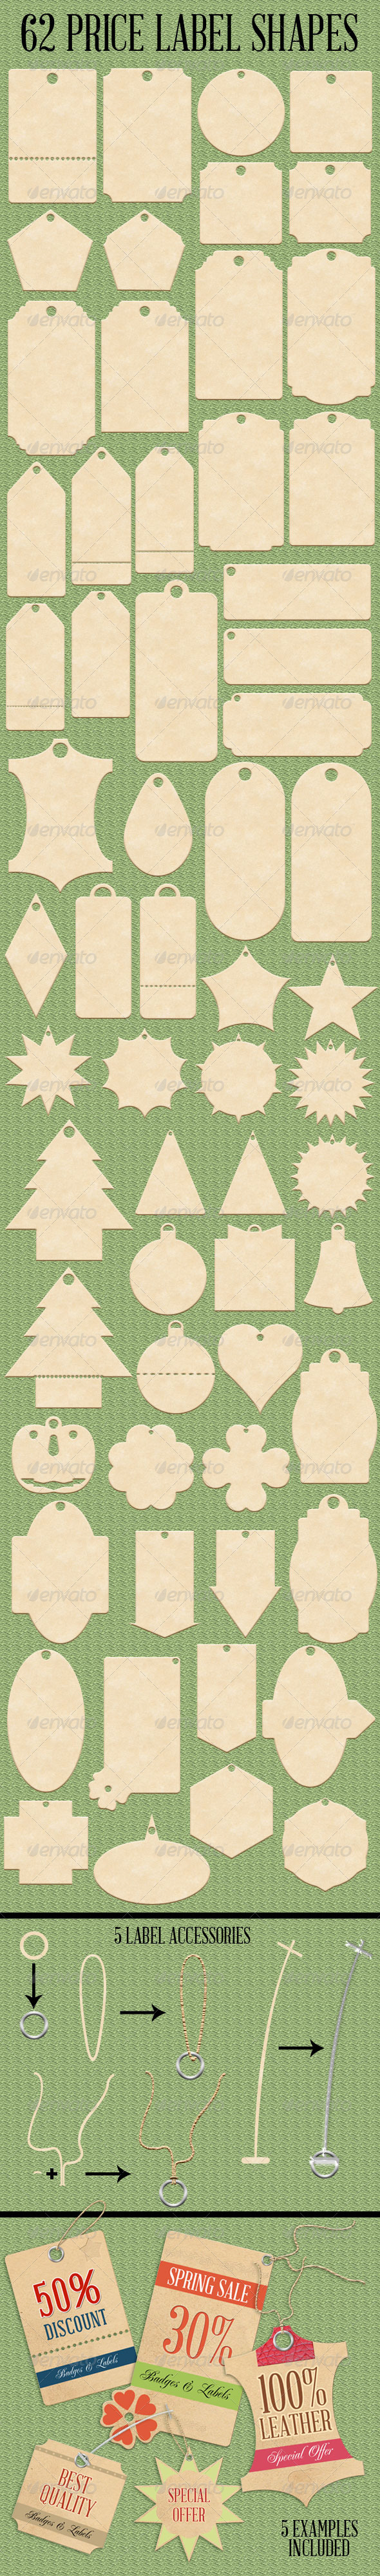 GraphicRiver 62 Price Label Shapes 7448169